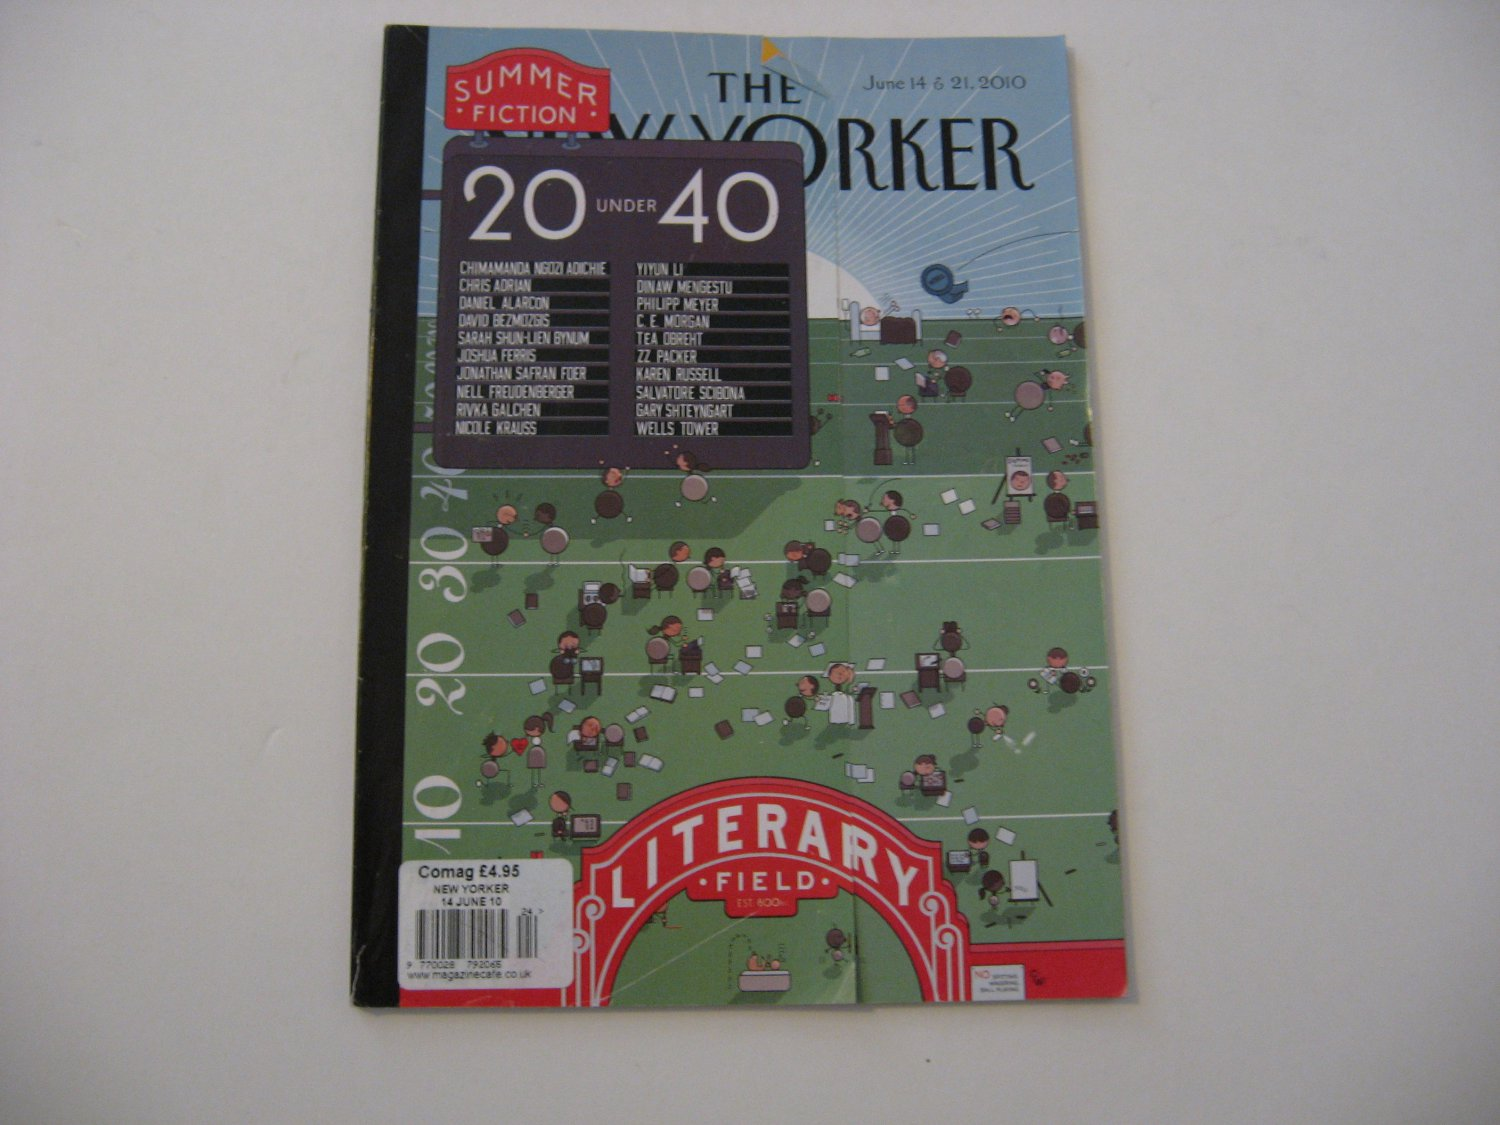 The New Yorker Magazine - Issue Date - June 14 & 16, 2010